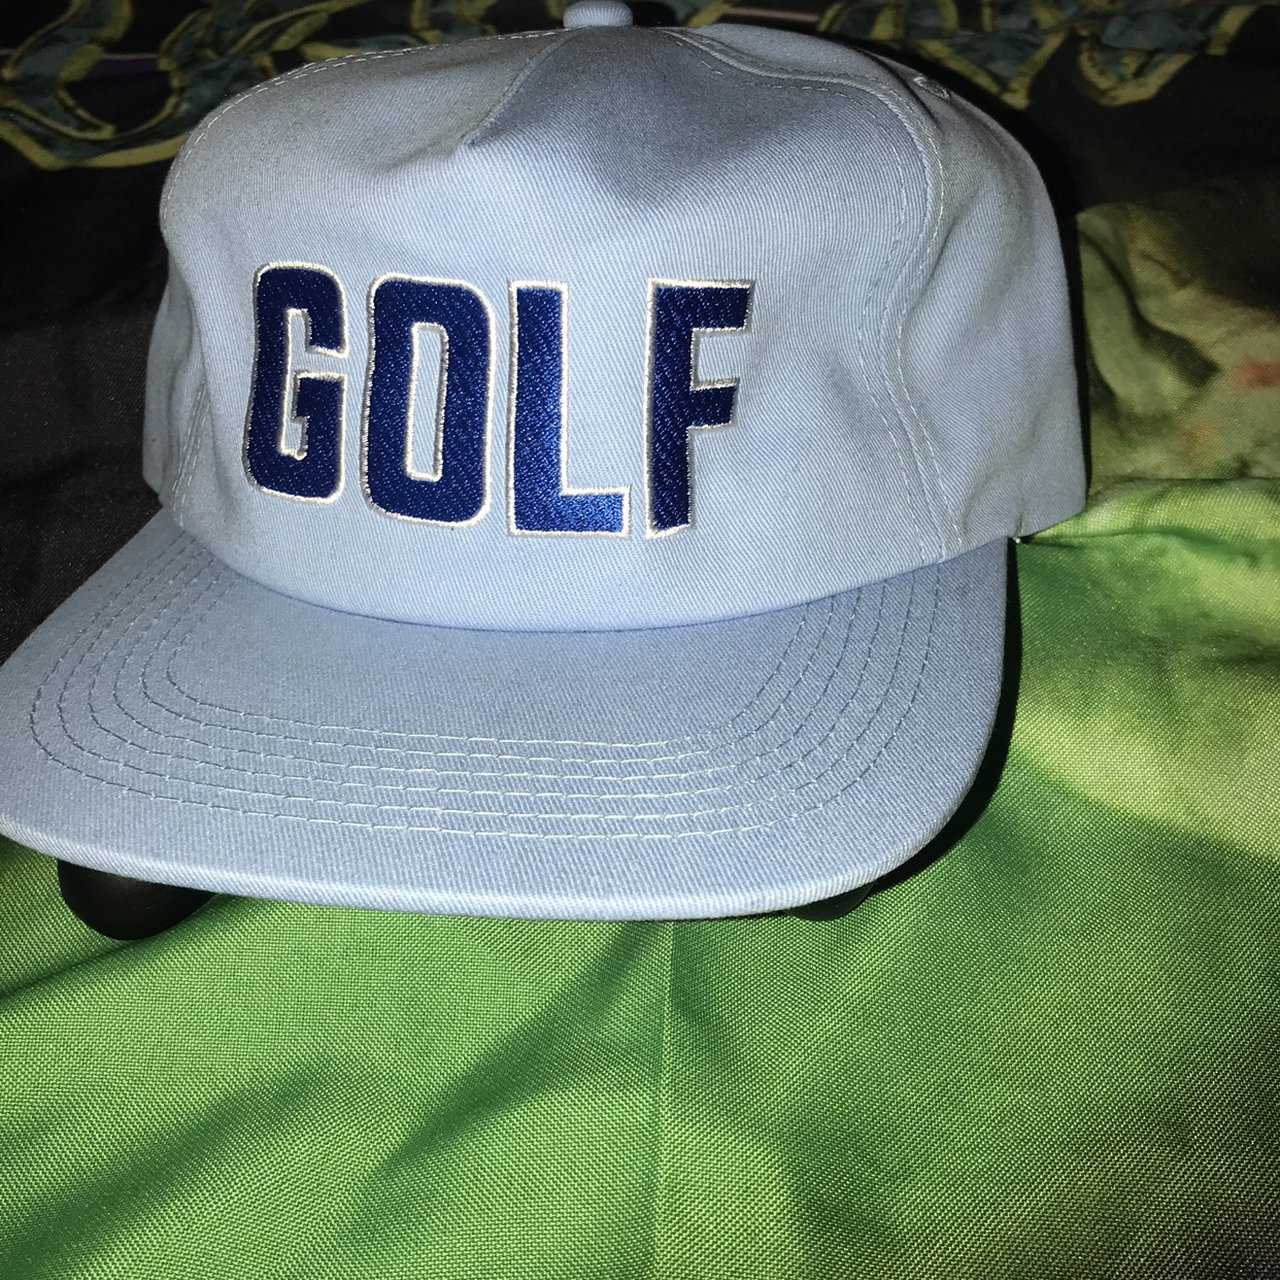 Brand new golf pride world wide hat from the mystery bags so - Depop c014980ac30